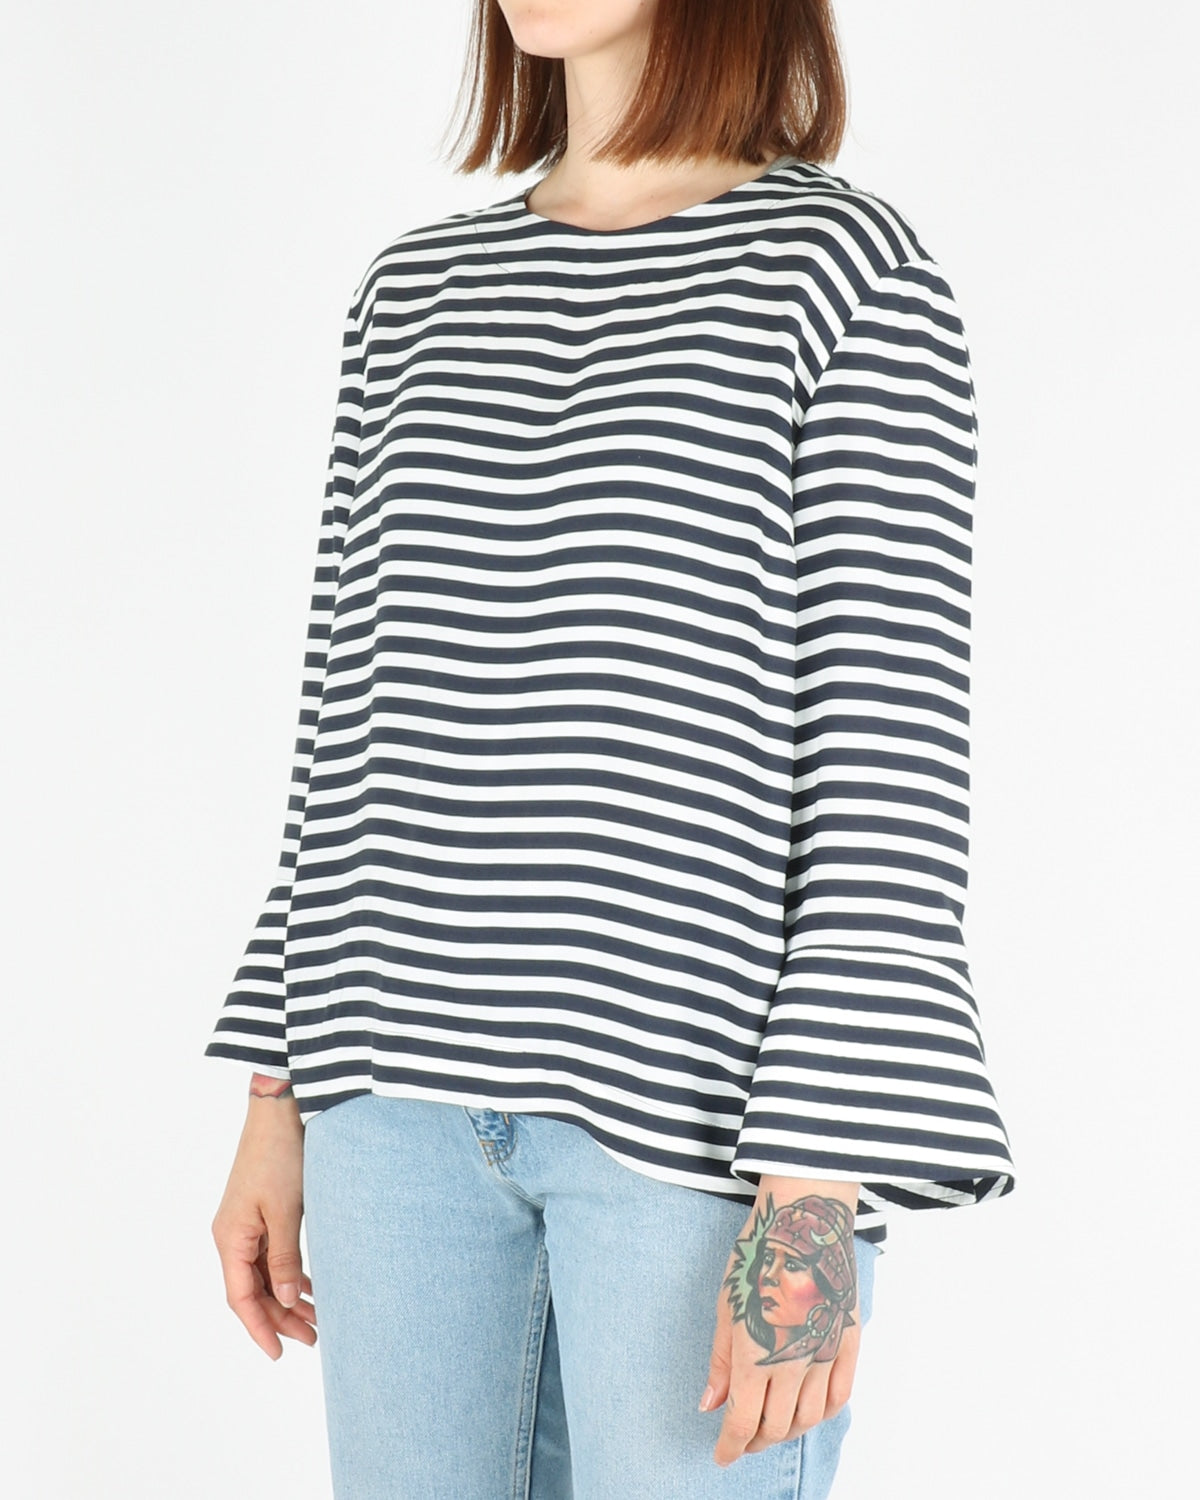 libertine libertine_unknown top_navy white_view_2_3